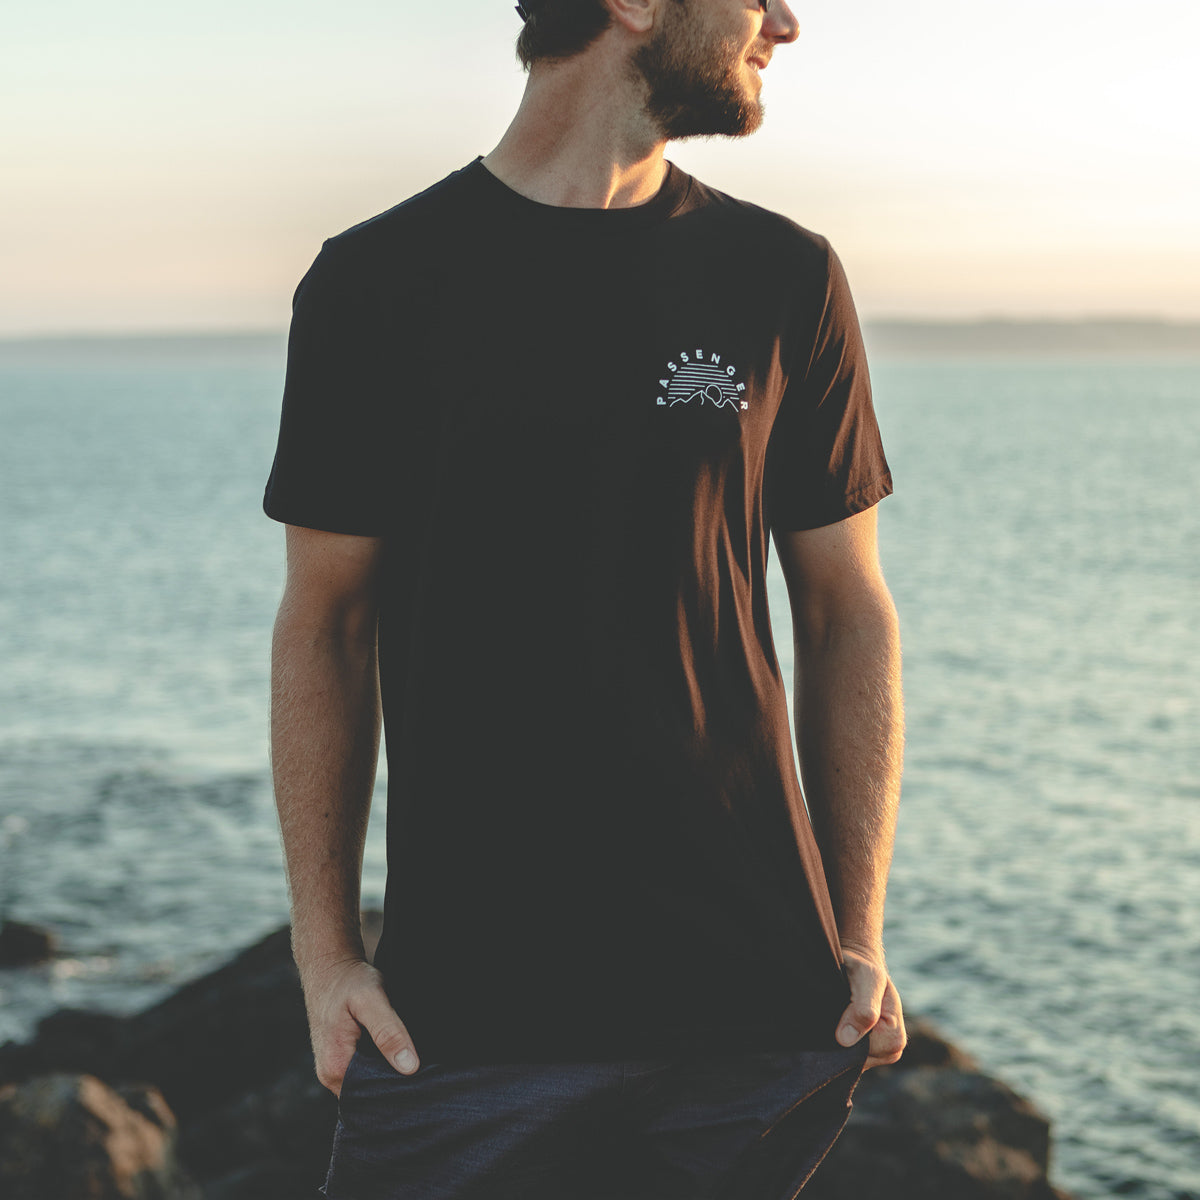 Lymington T-Shirt - Black image 1